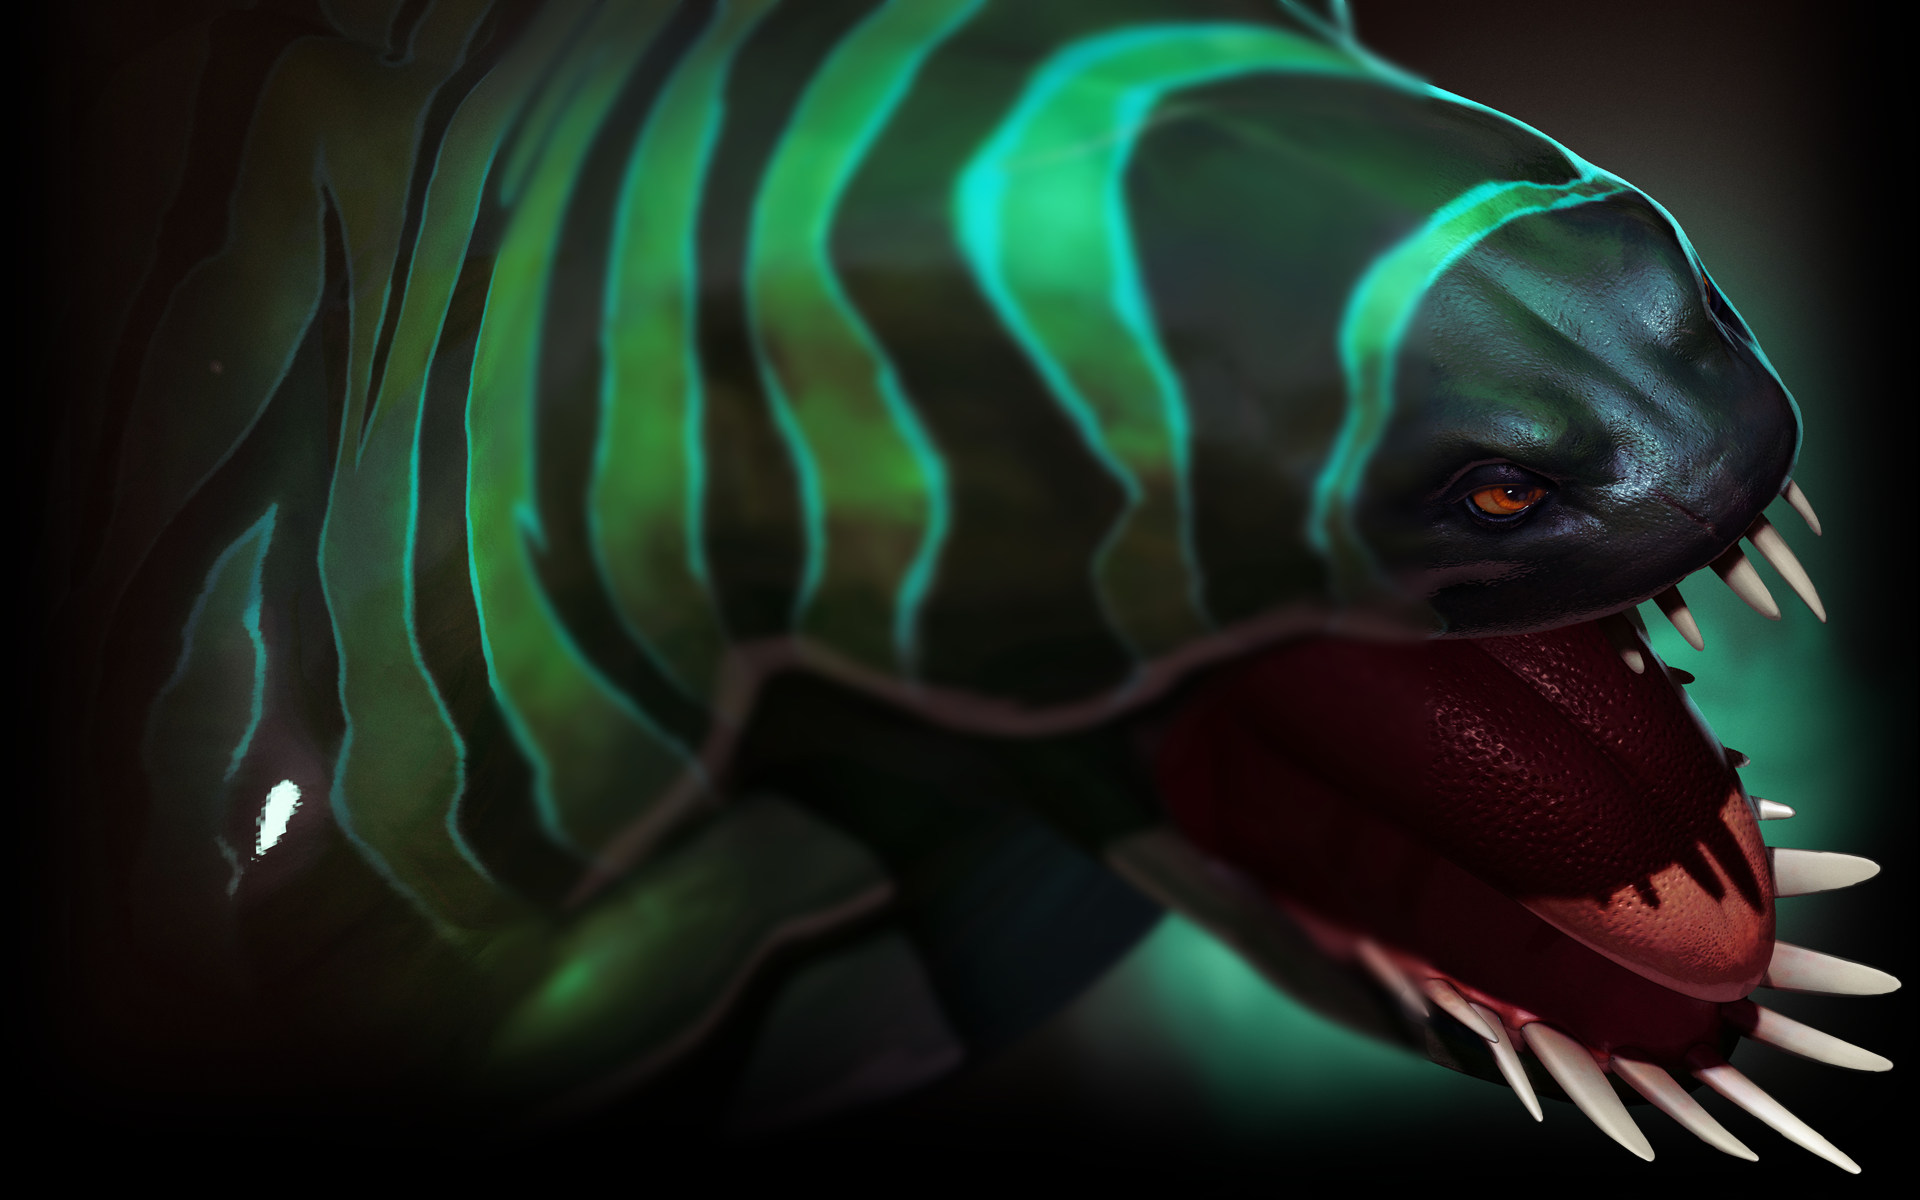 570-Tidehunter (Profile Background)